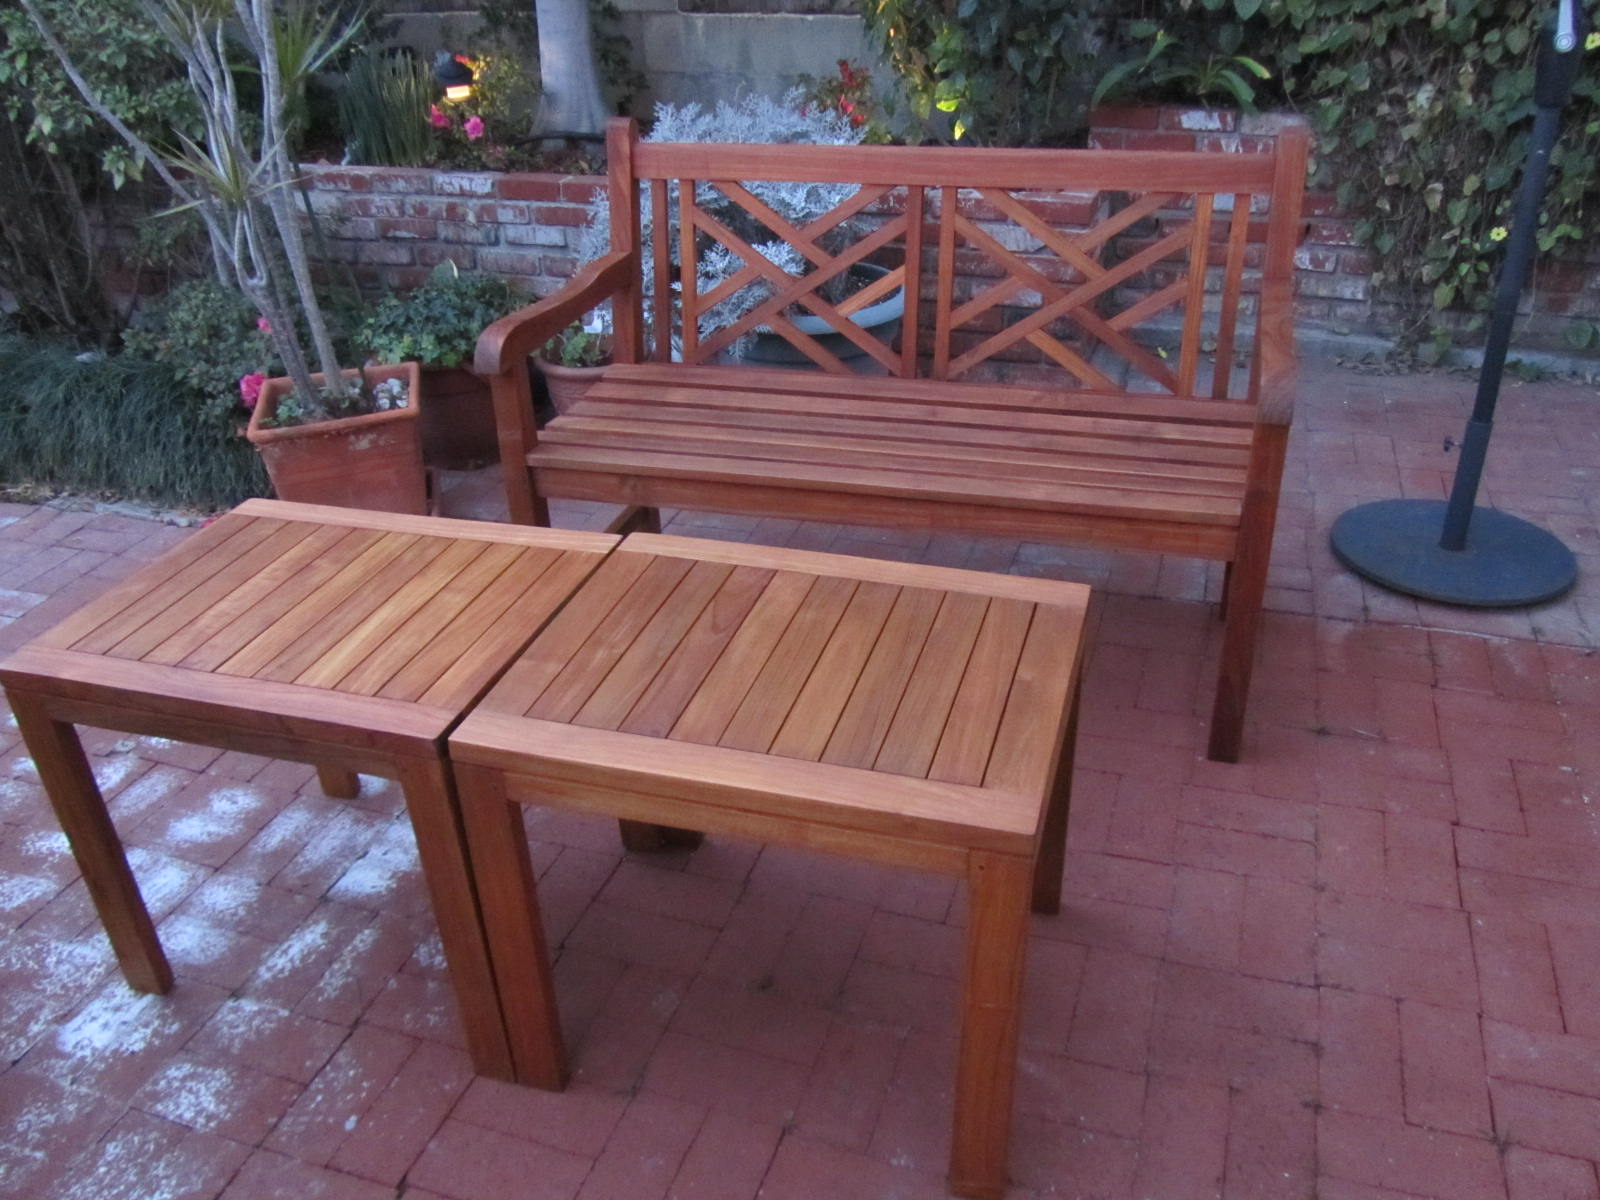 ... teak patio furniture I revived with Penofin Verde. I am very proud of